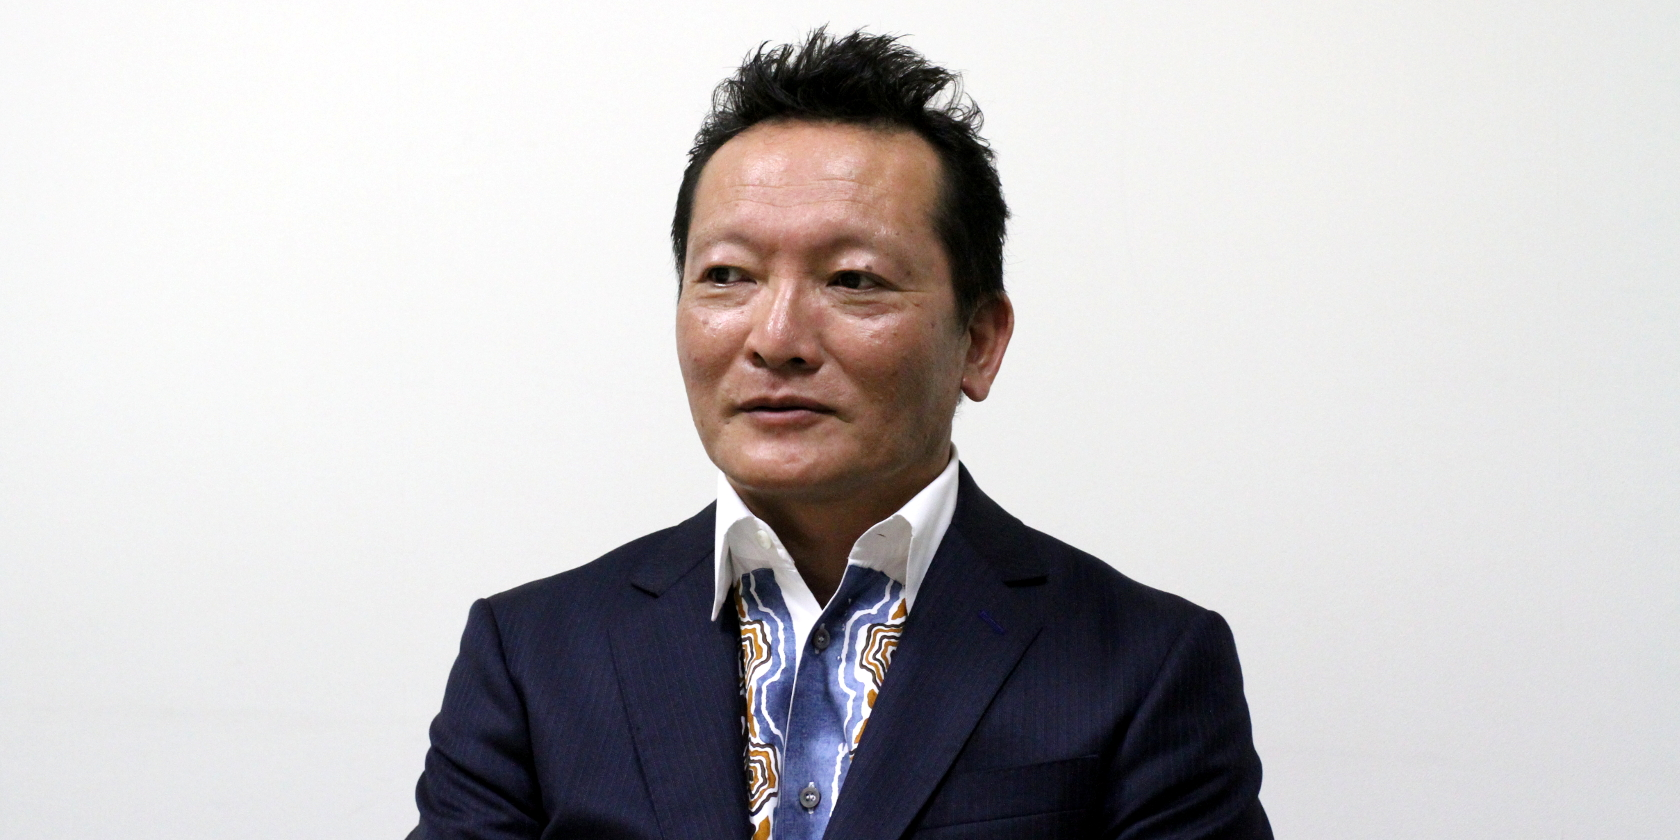 Interview: Nissan's Manabu Tachibana Discusses New Trends in Interior Materials